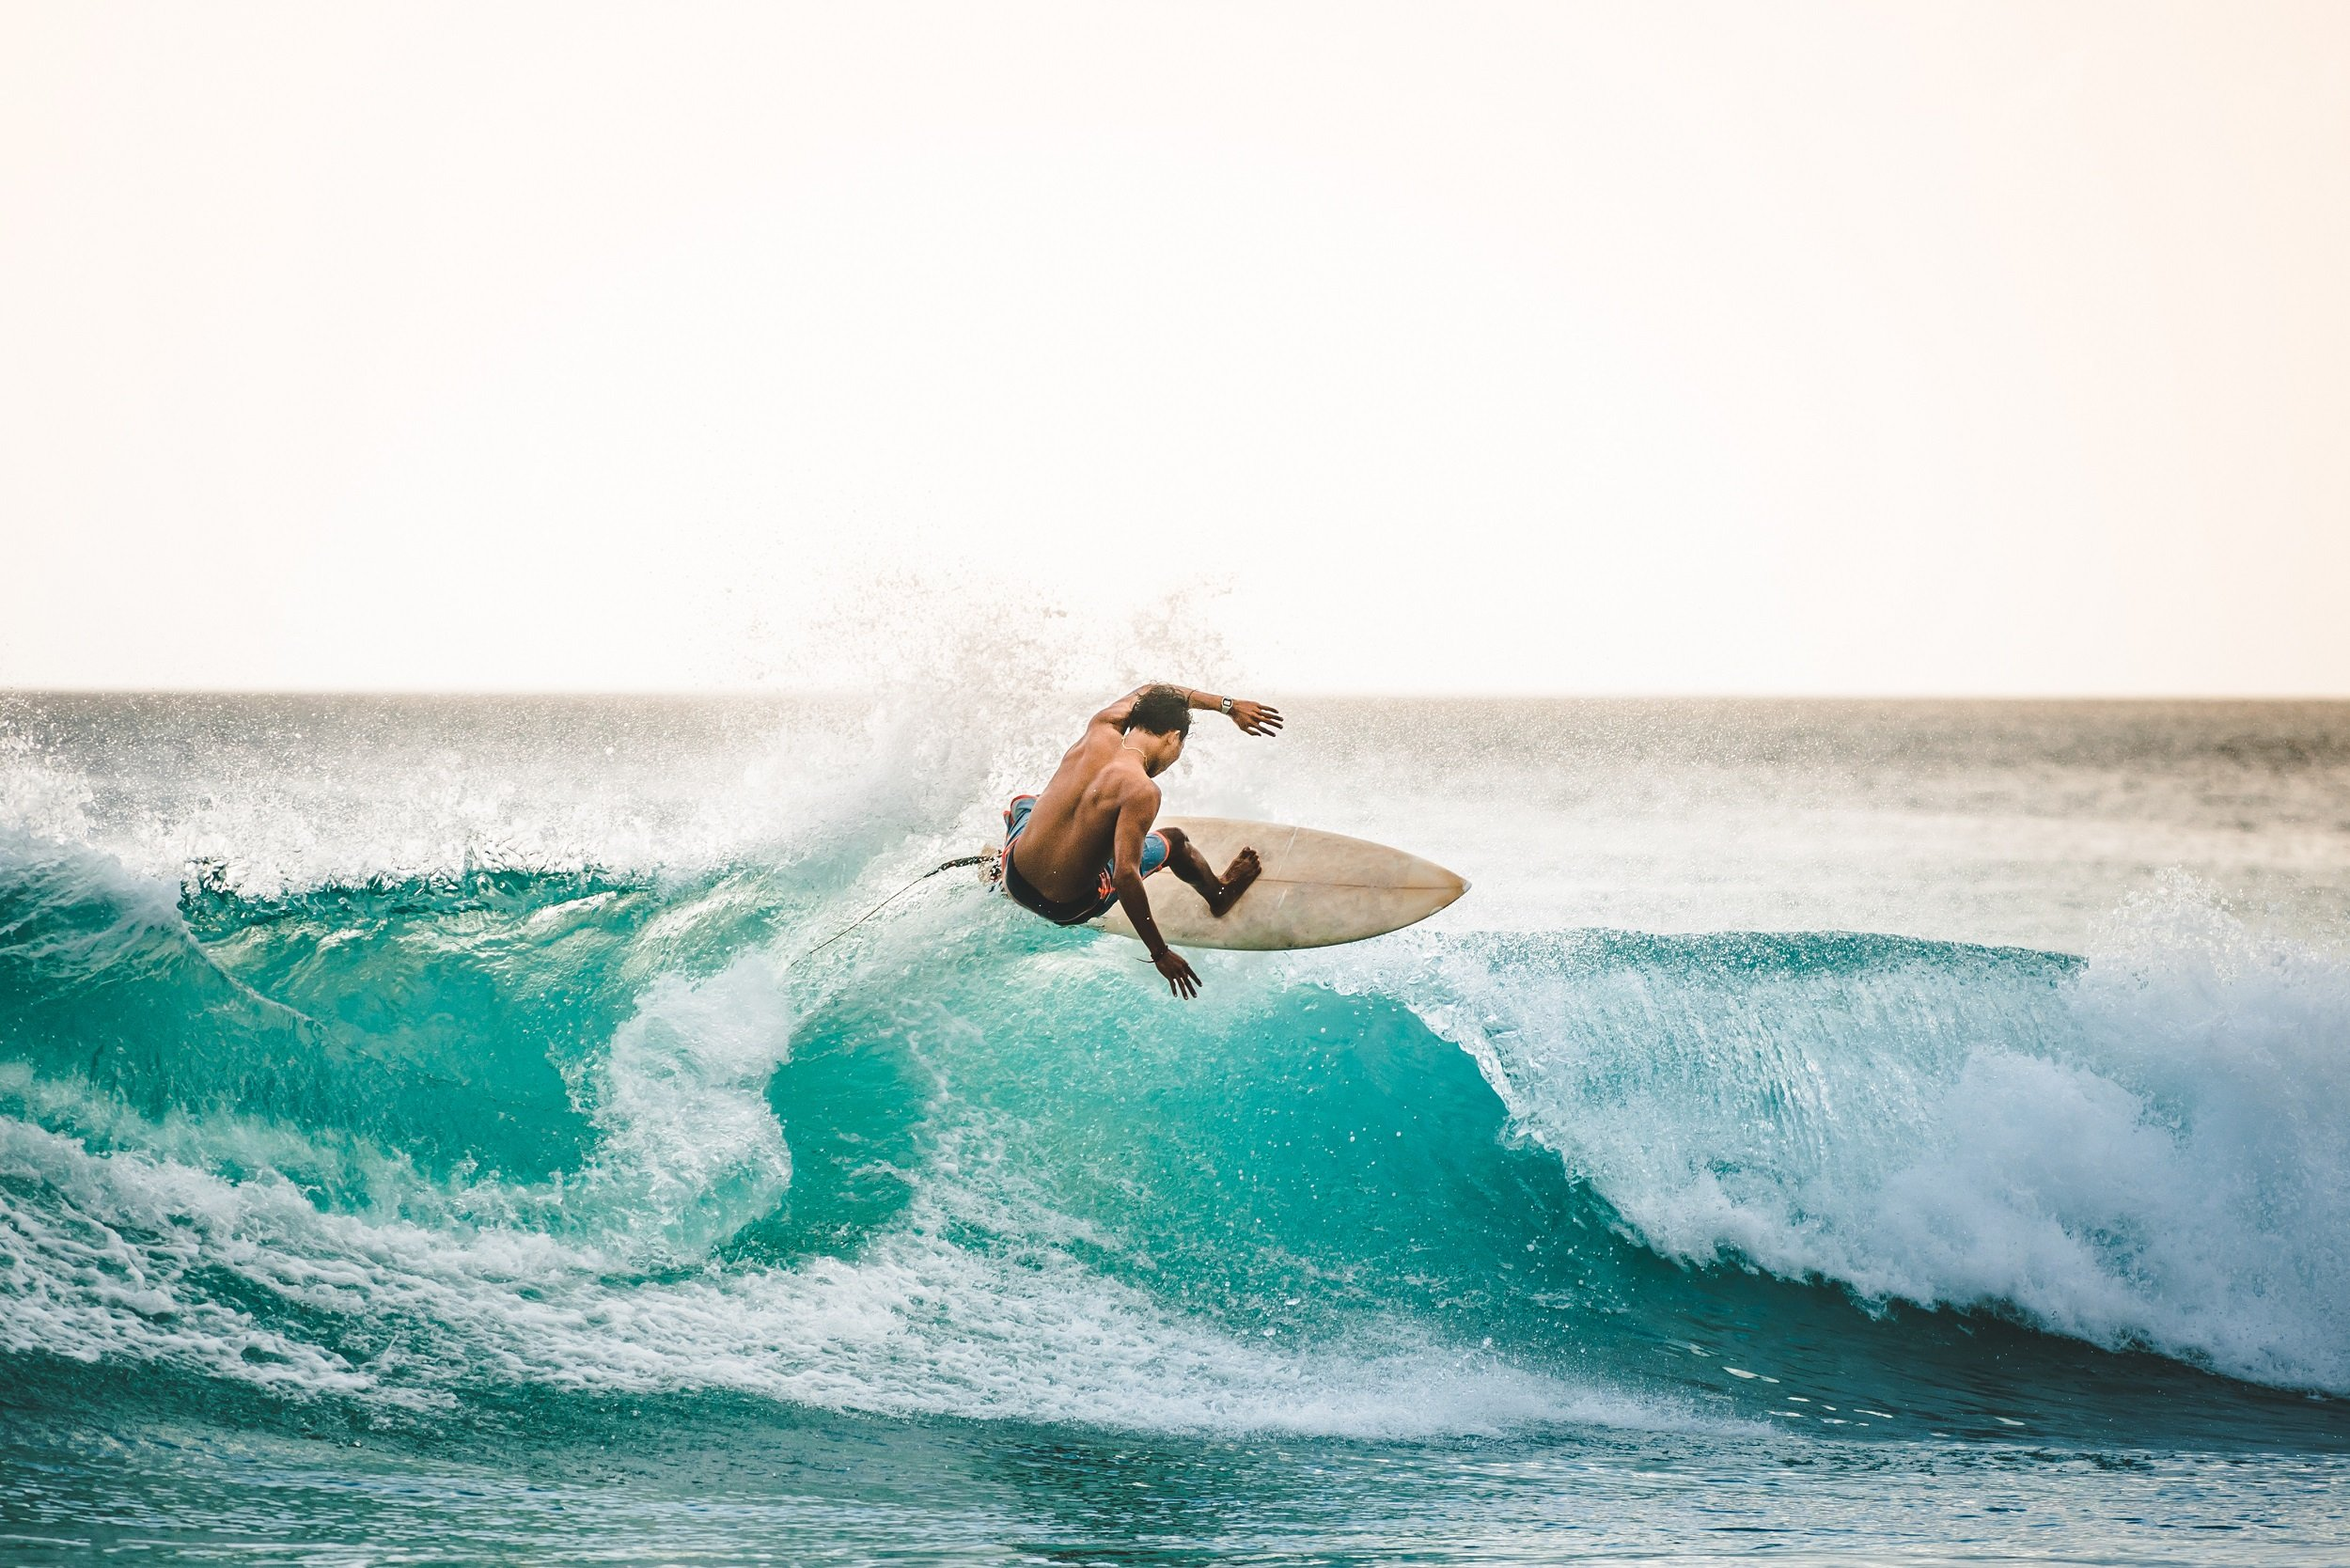 Surfer Essaouira Private Tour & Surf Experience From Marrakesh